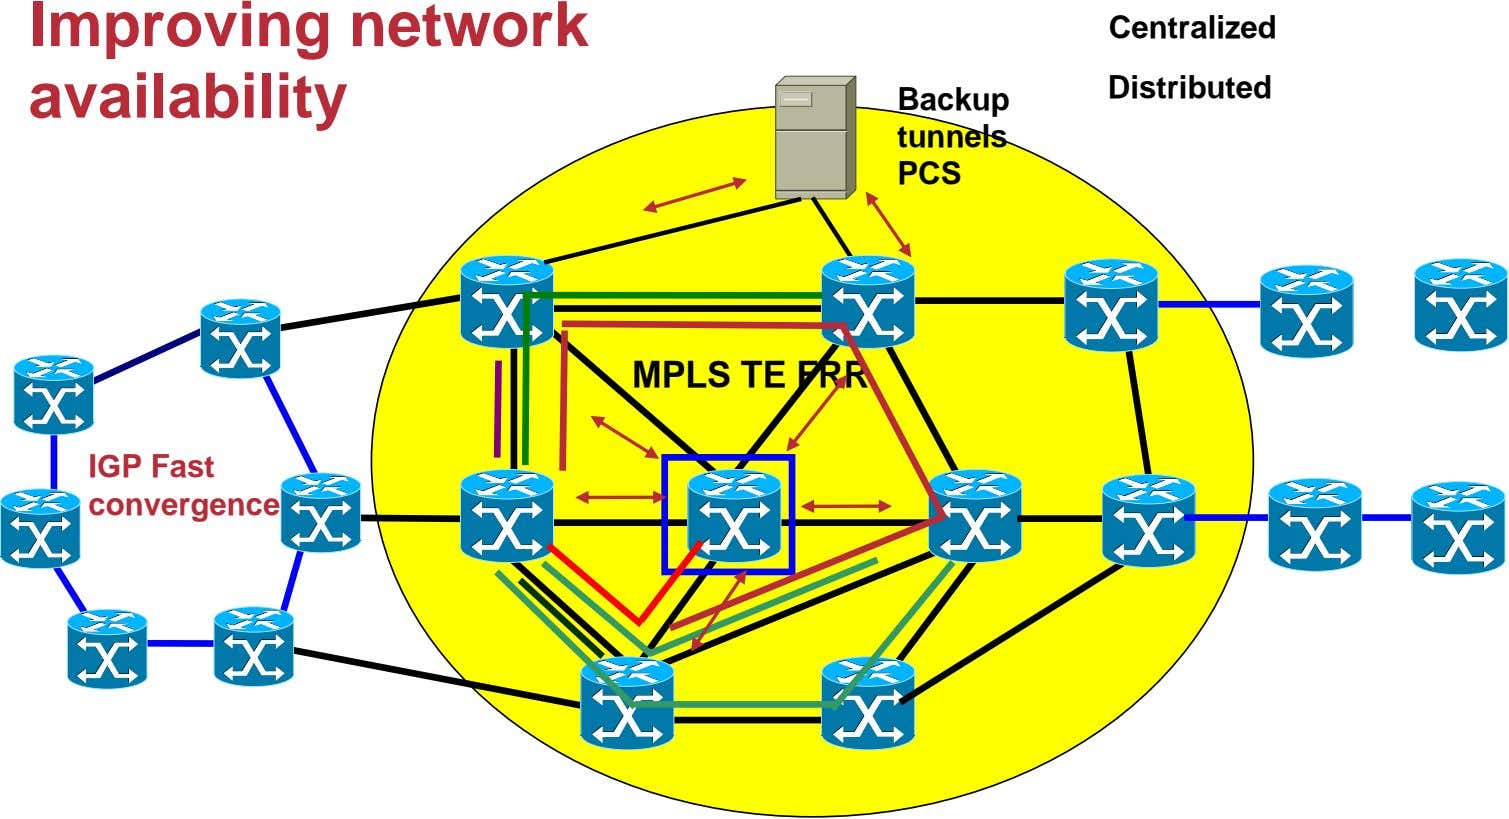 Improving network availability Centralized Distributed Backup tunnels PCS MPLS TE FRR IGP Fast convergence